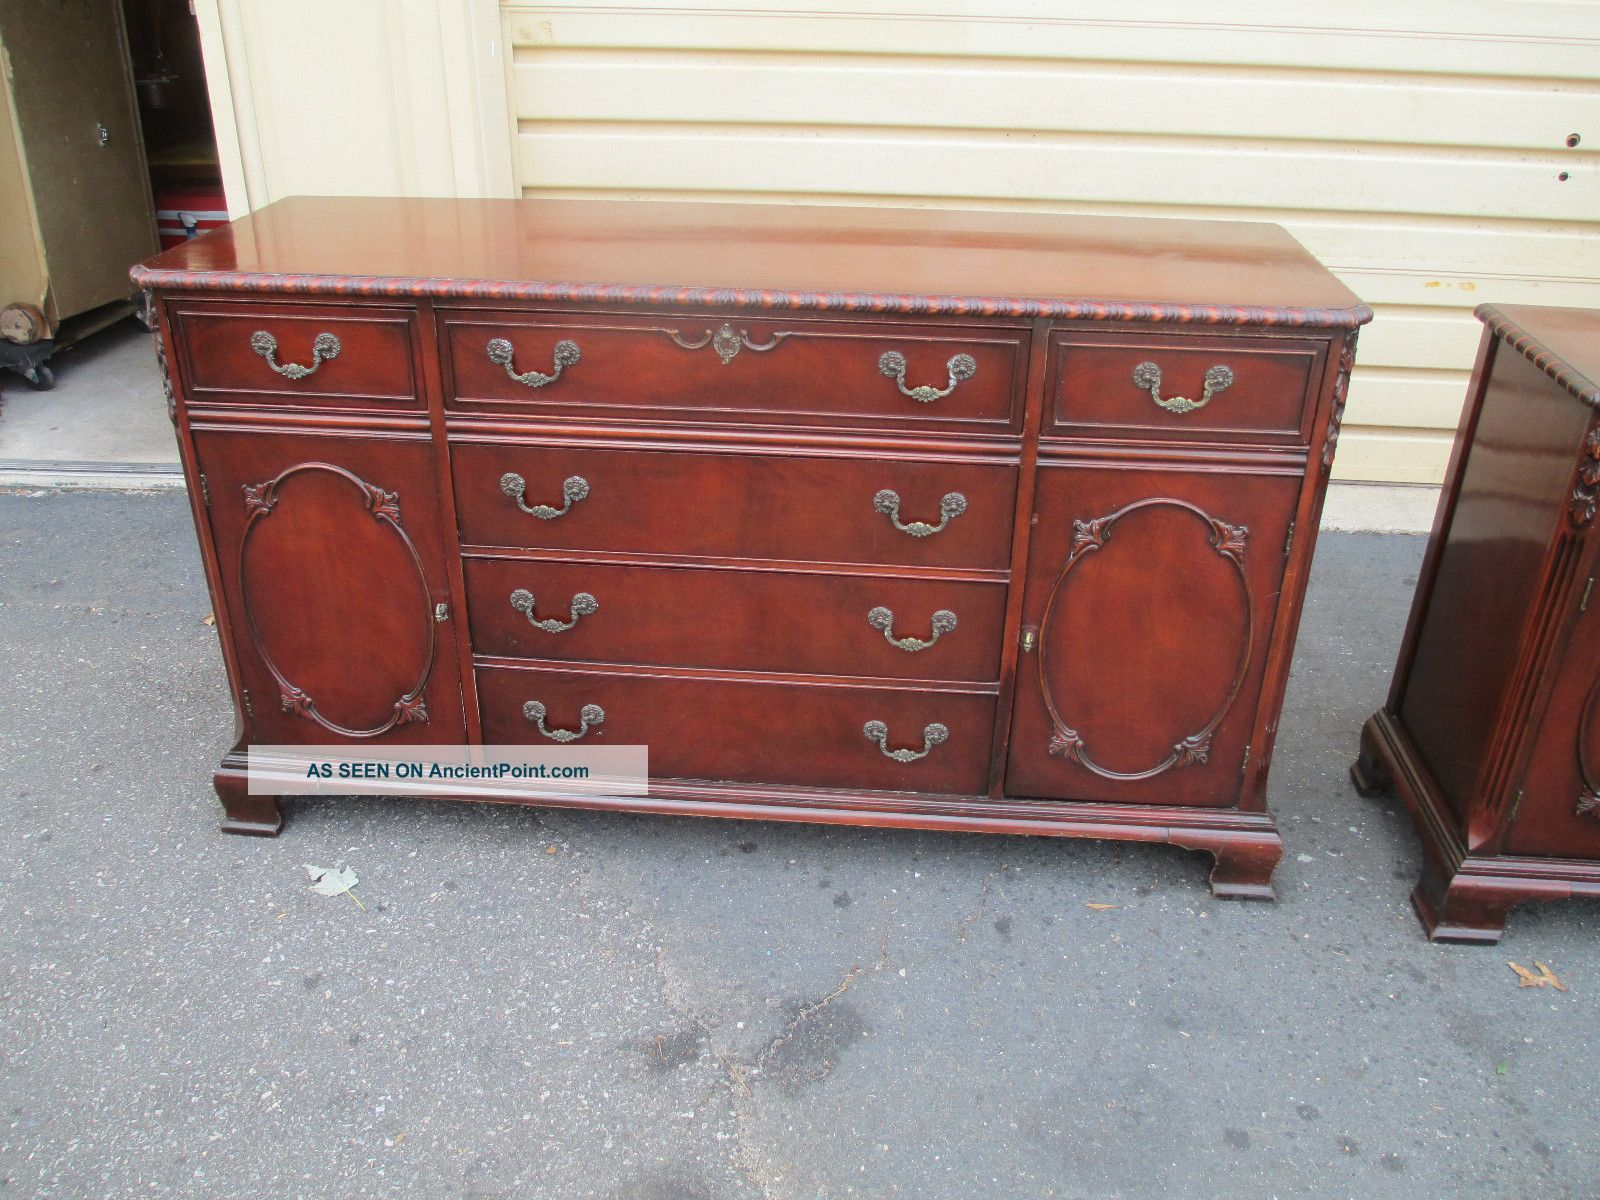 52520 Antique Mahogany Buffet Sideboard Server 1900-1950 photo